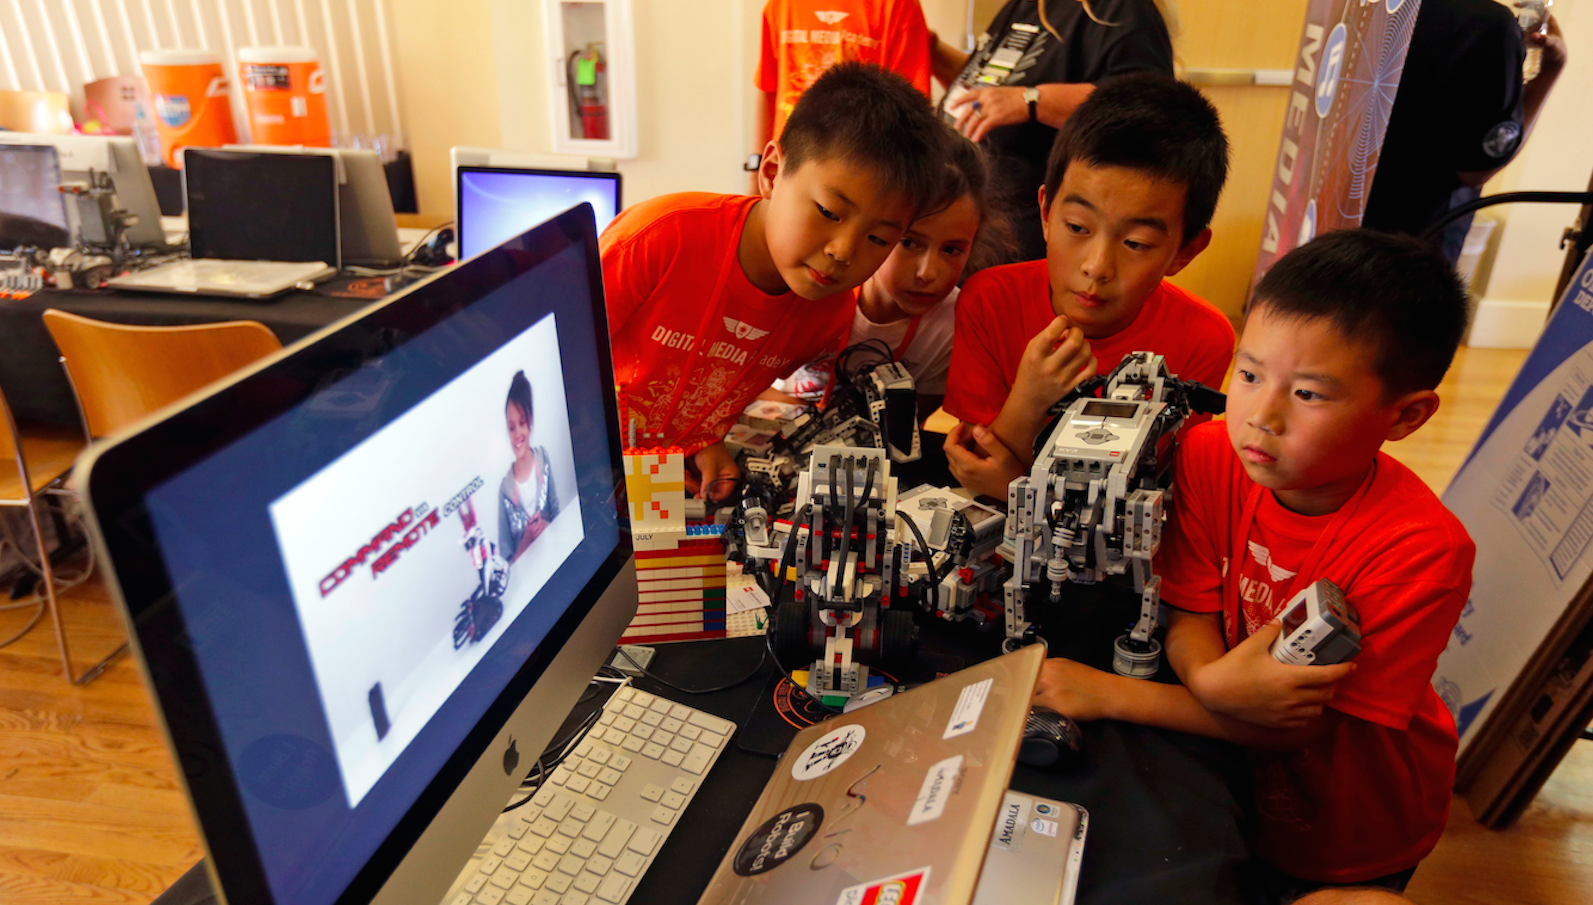 In this Aug. 14, 2013 file photo, children look at a computer presentation on how to assemble Lego parts during a Digital Media Academy workshop in Stanford, Calif.